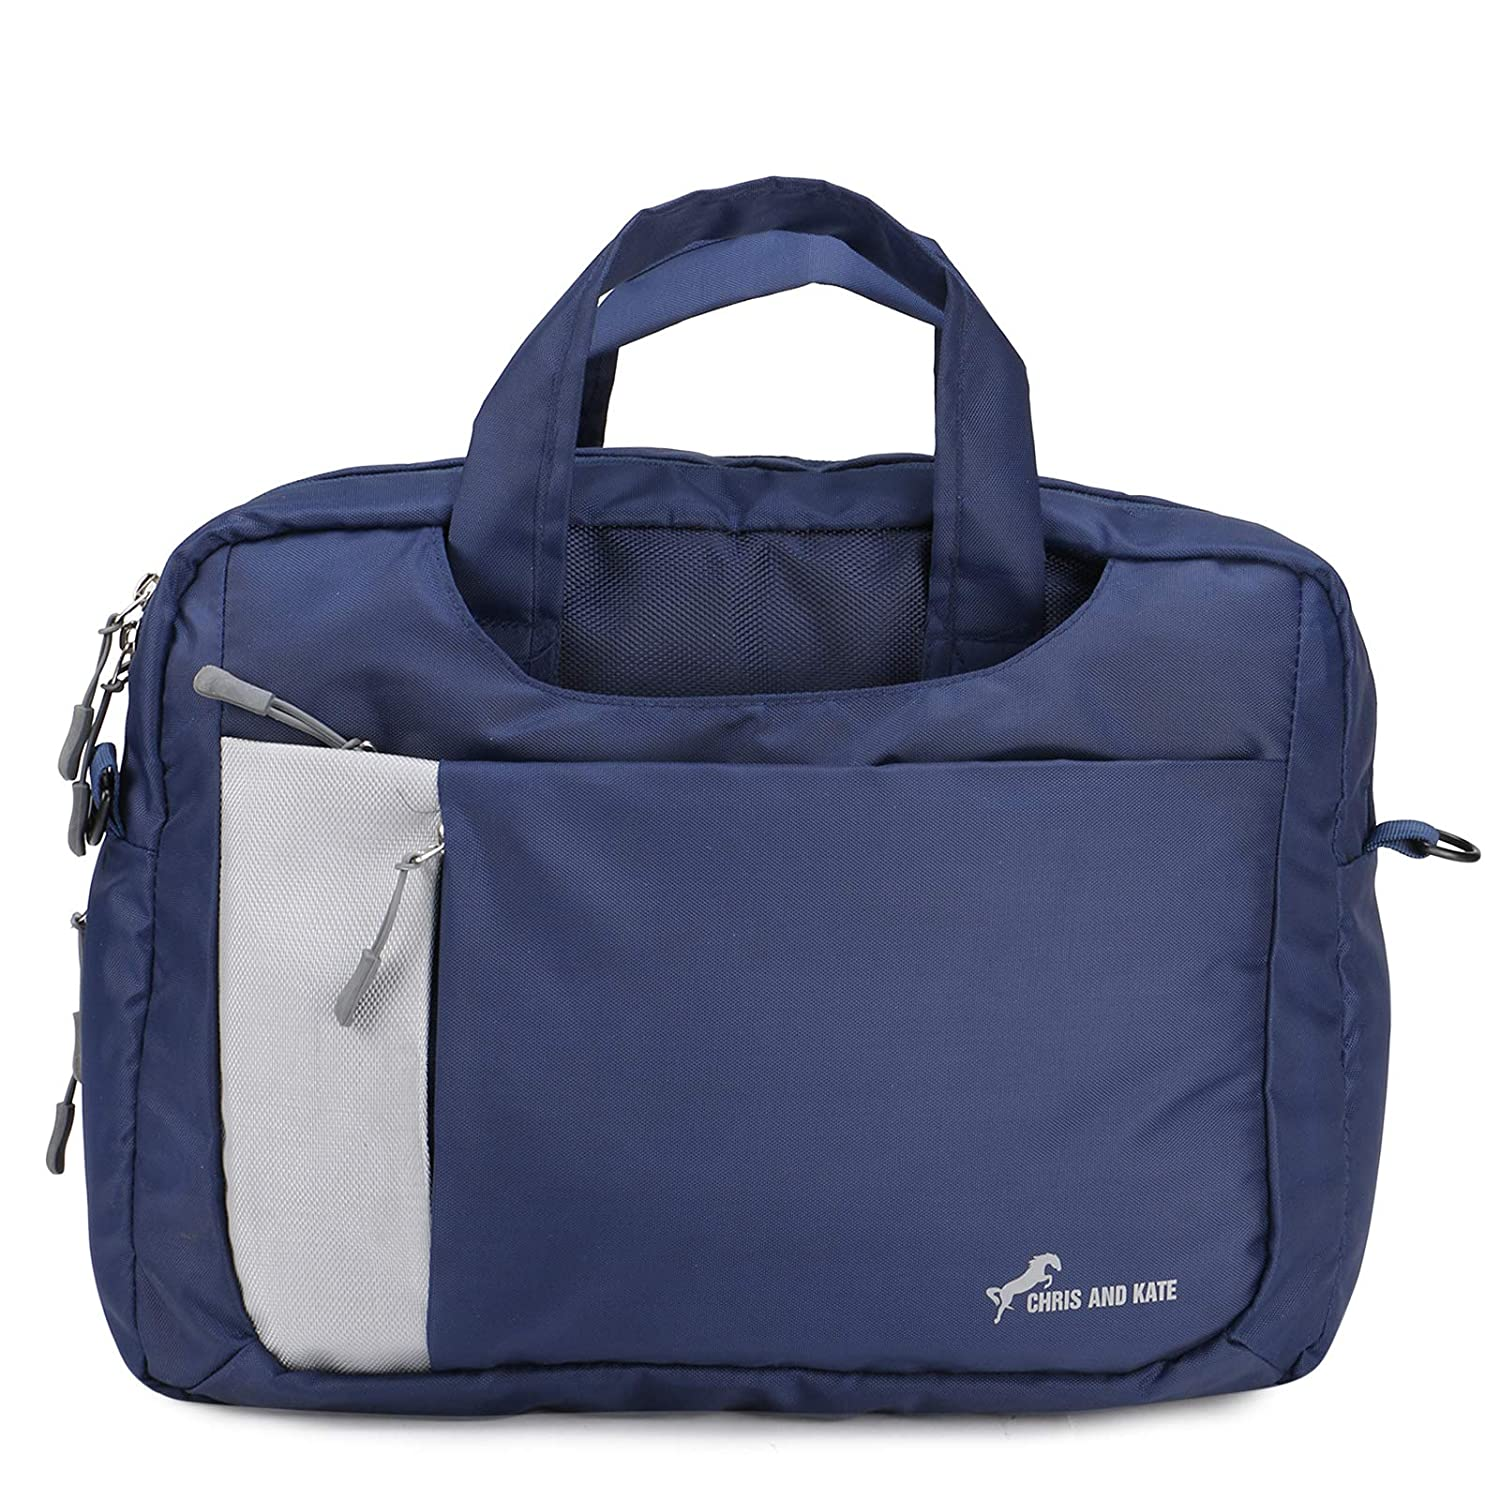 Chris & Kate Blue 4-Way Laptop Bag - Hand | Shoulder |